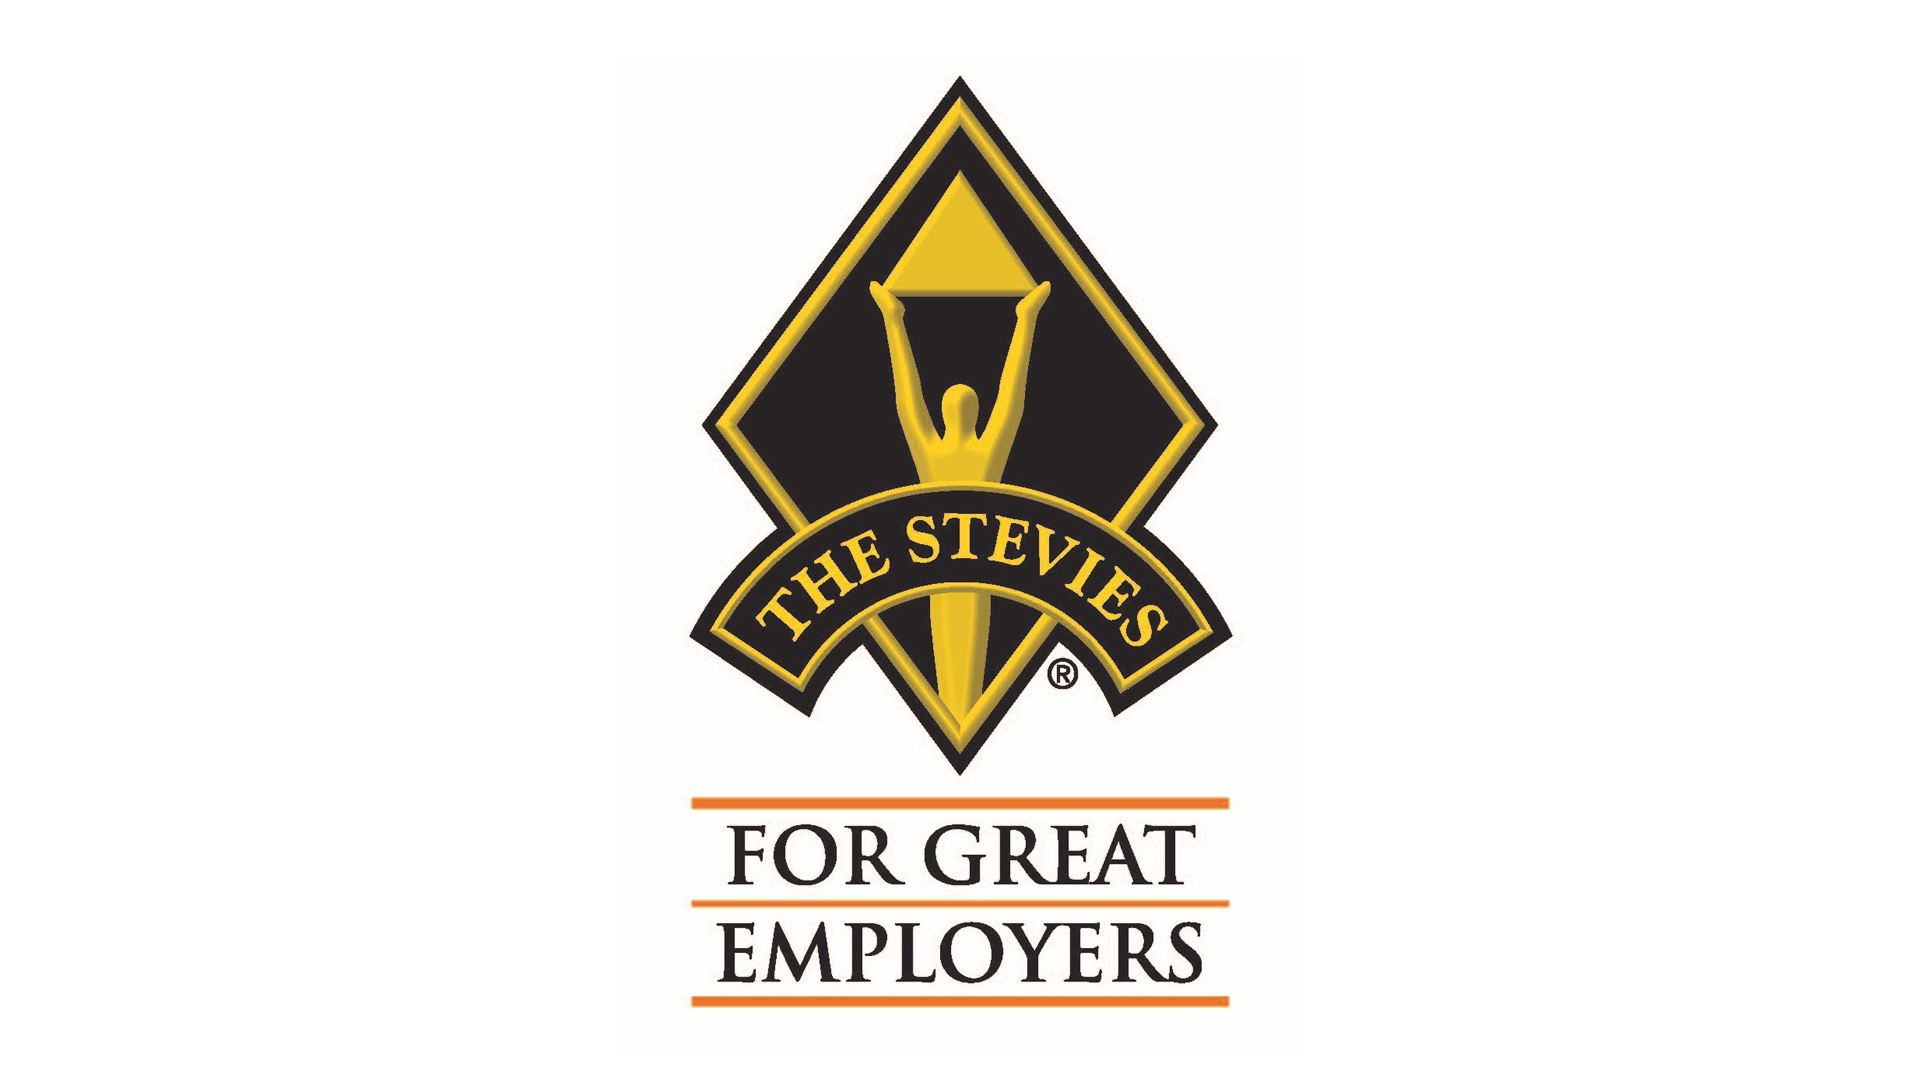 The Stevies for Great Employer Awards